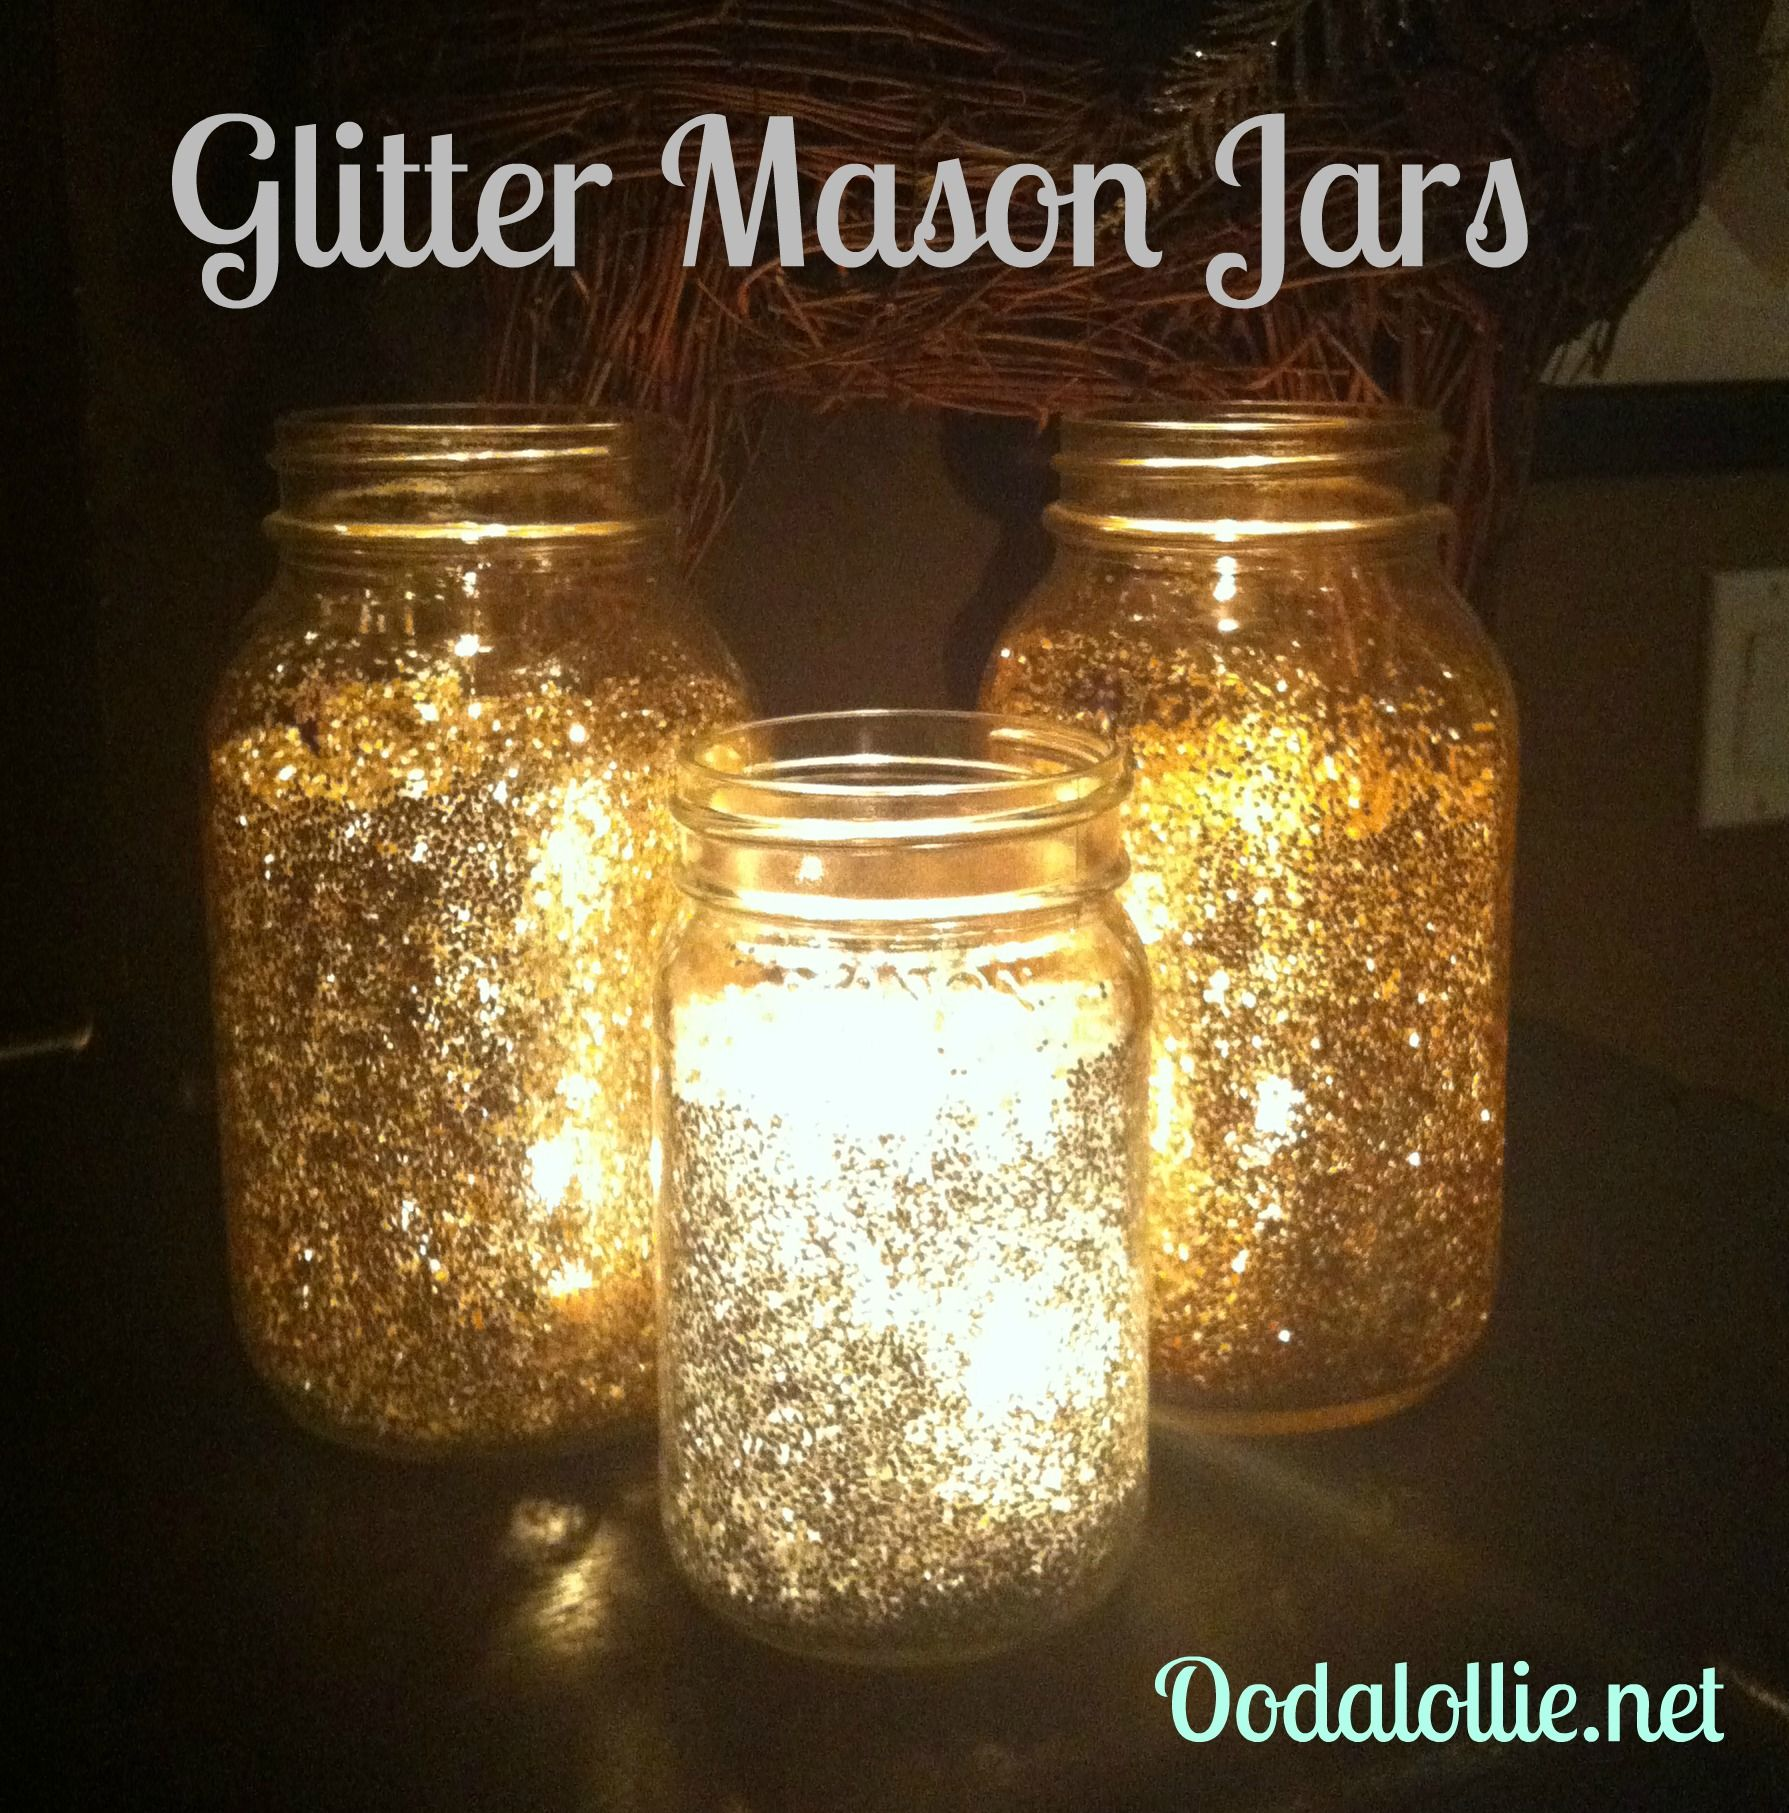 Candles With Gifts Inside Glitter Mason Jars Beautiful And Sparkly With A Candle